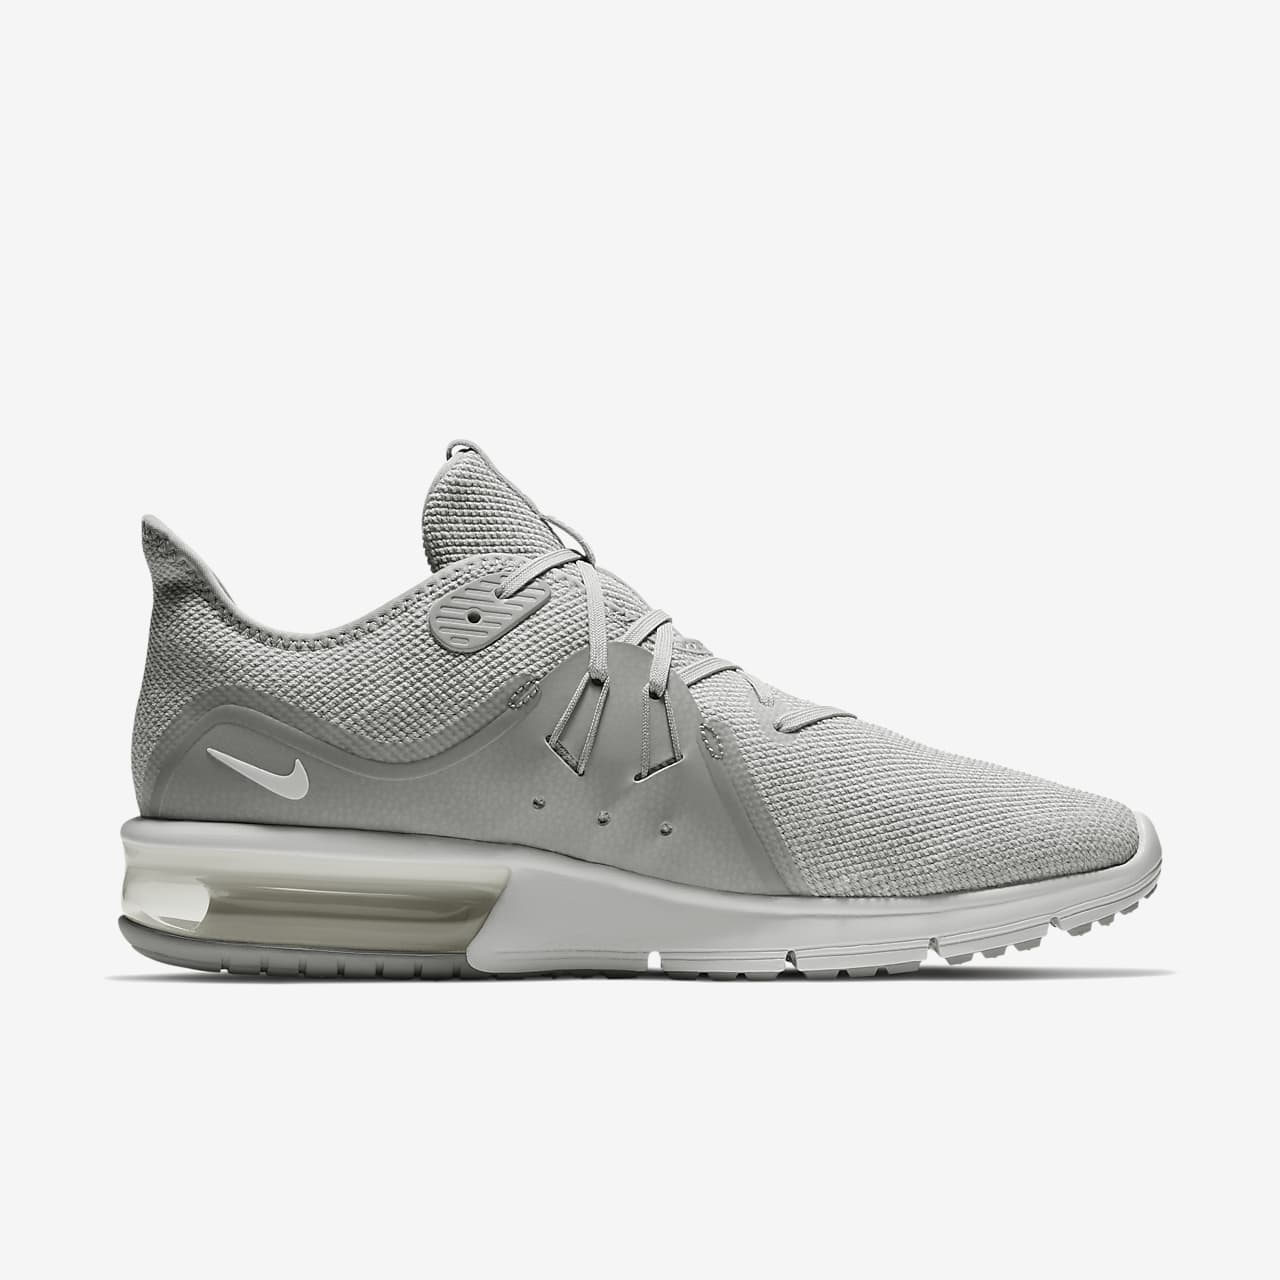 Nike Air Max Sequent 3 Herrenschuh